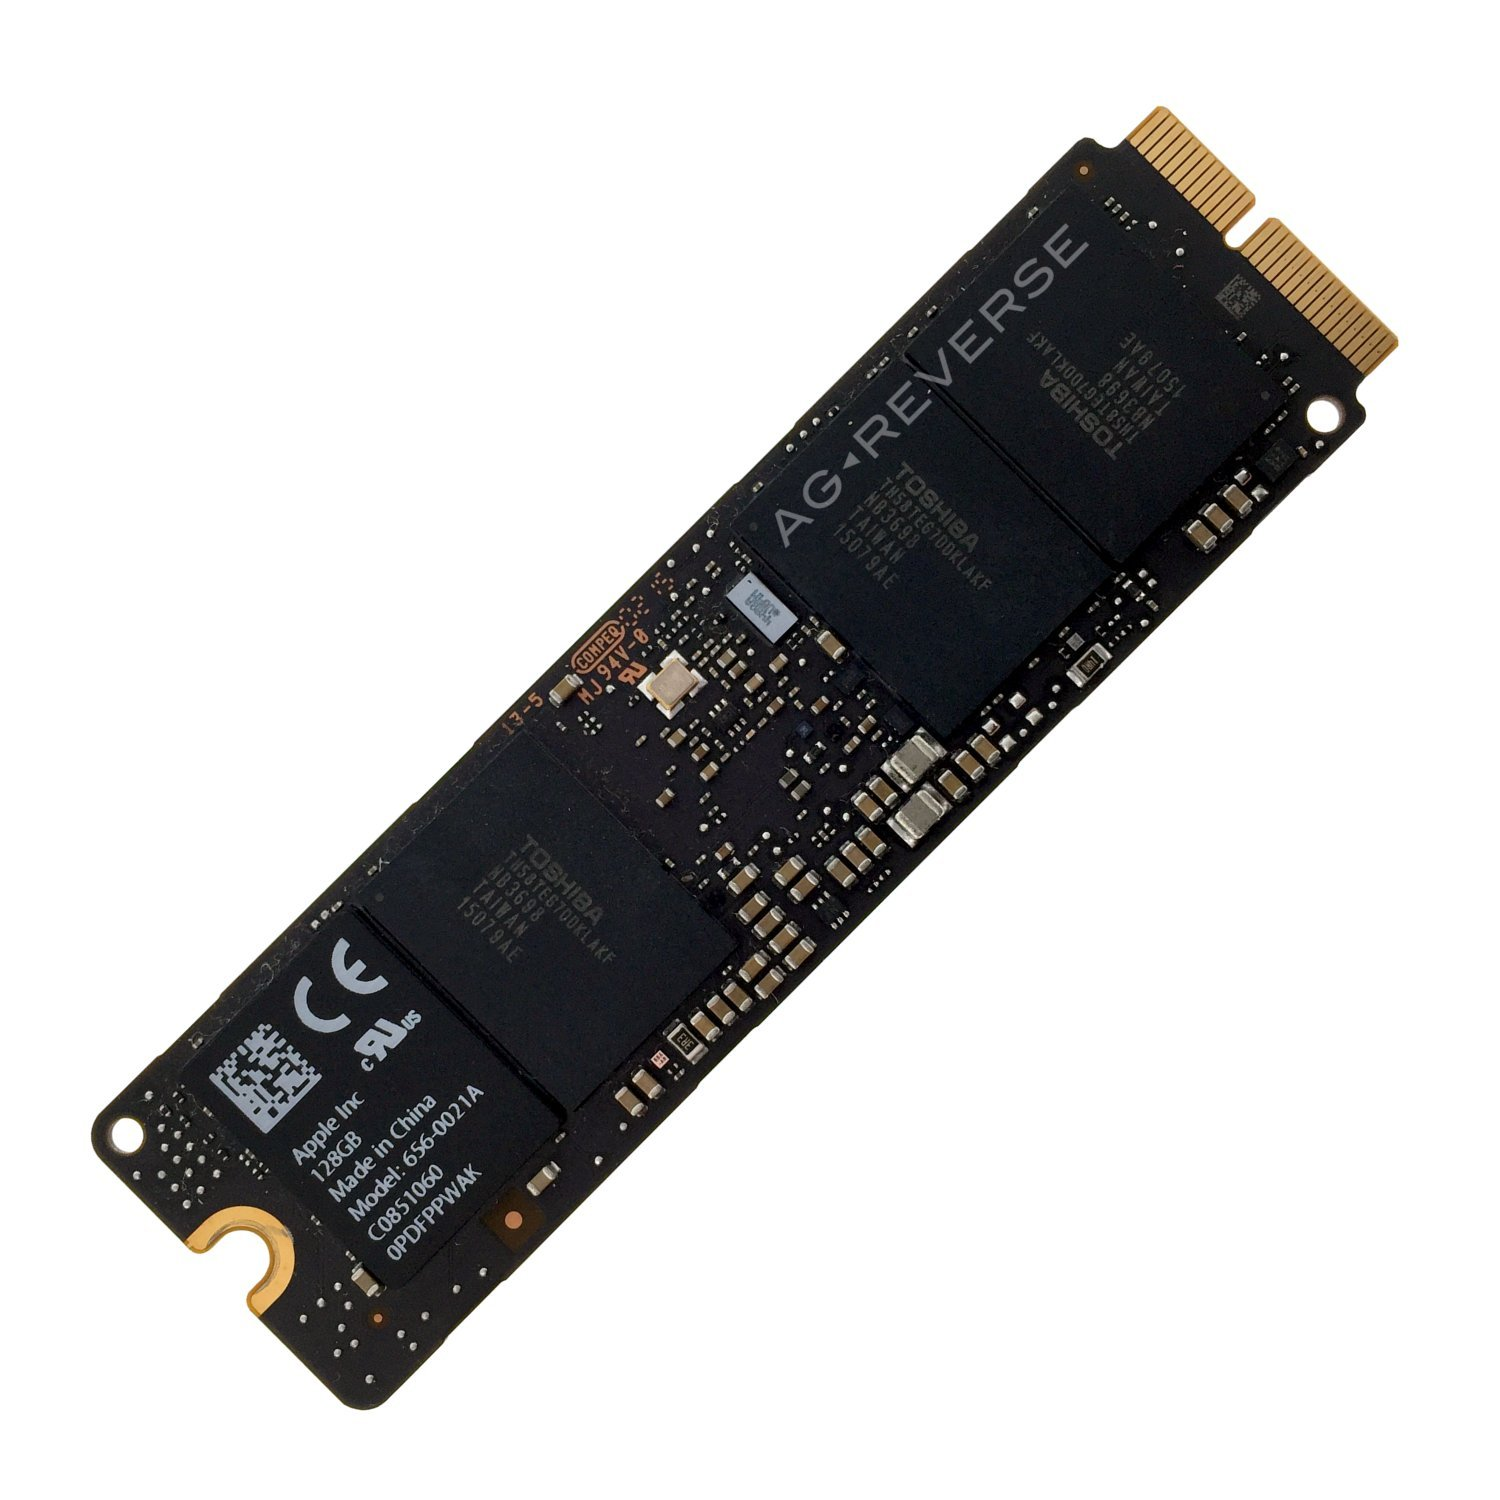 Cheap Macbook Ssd 128gb Find Deals On Line At Apple Air 13 Mmgf2 Silver Get Quotations Hard Drive Pro A1502 15 A1398